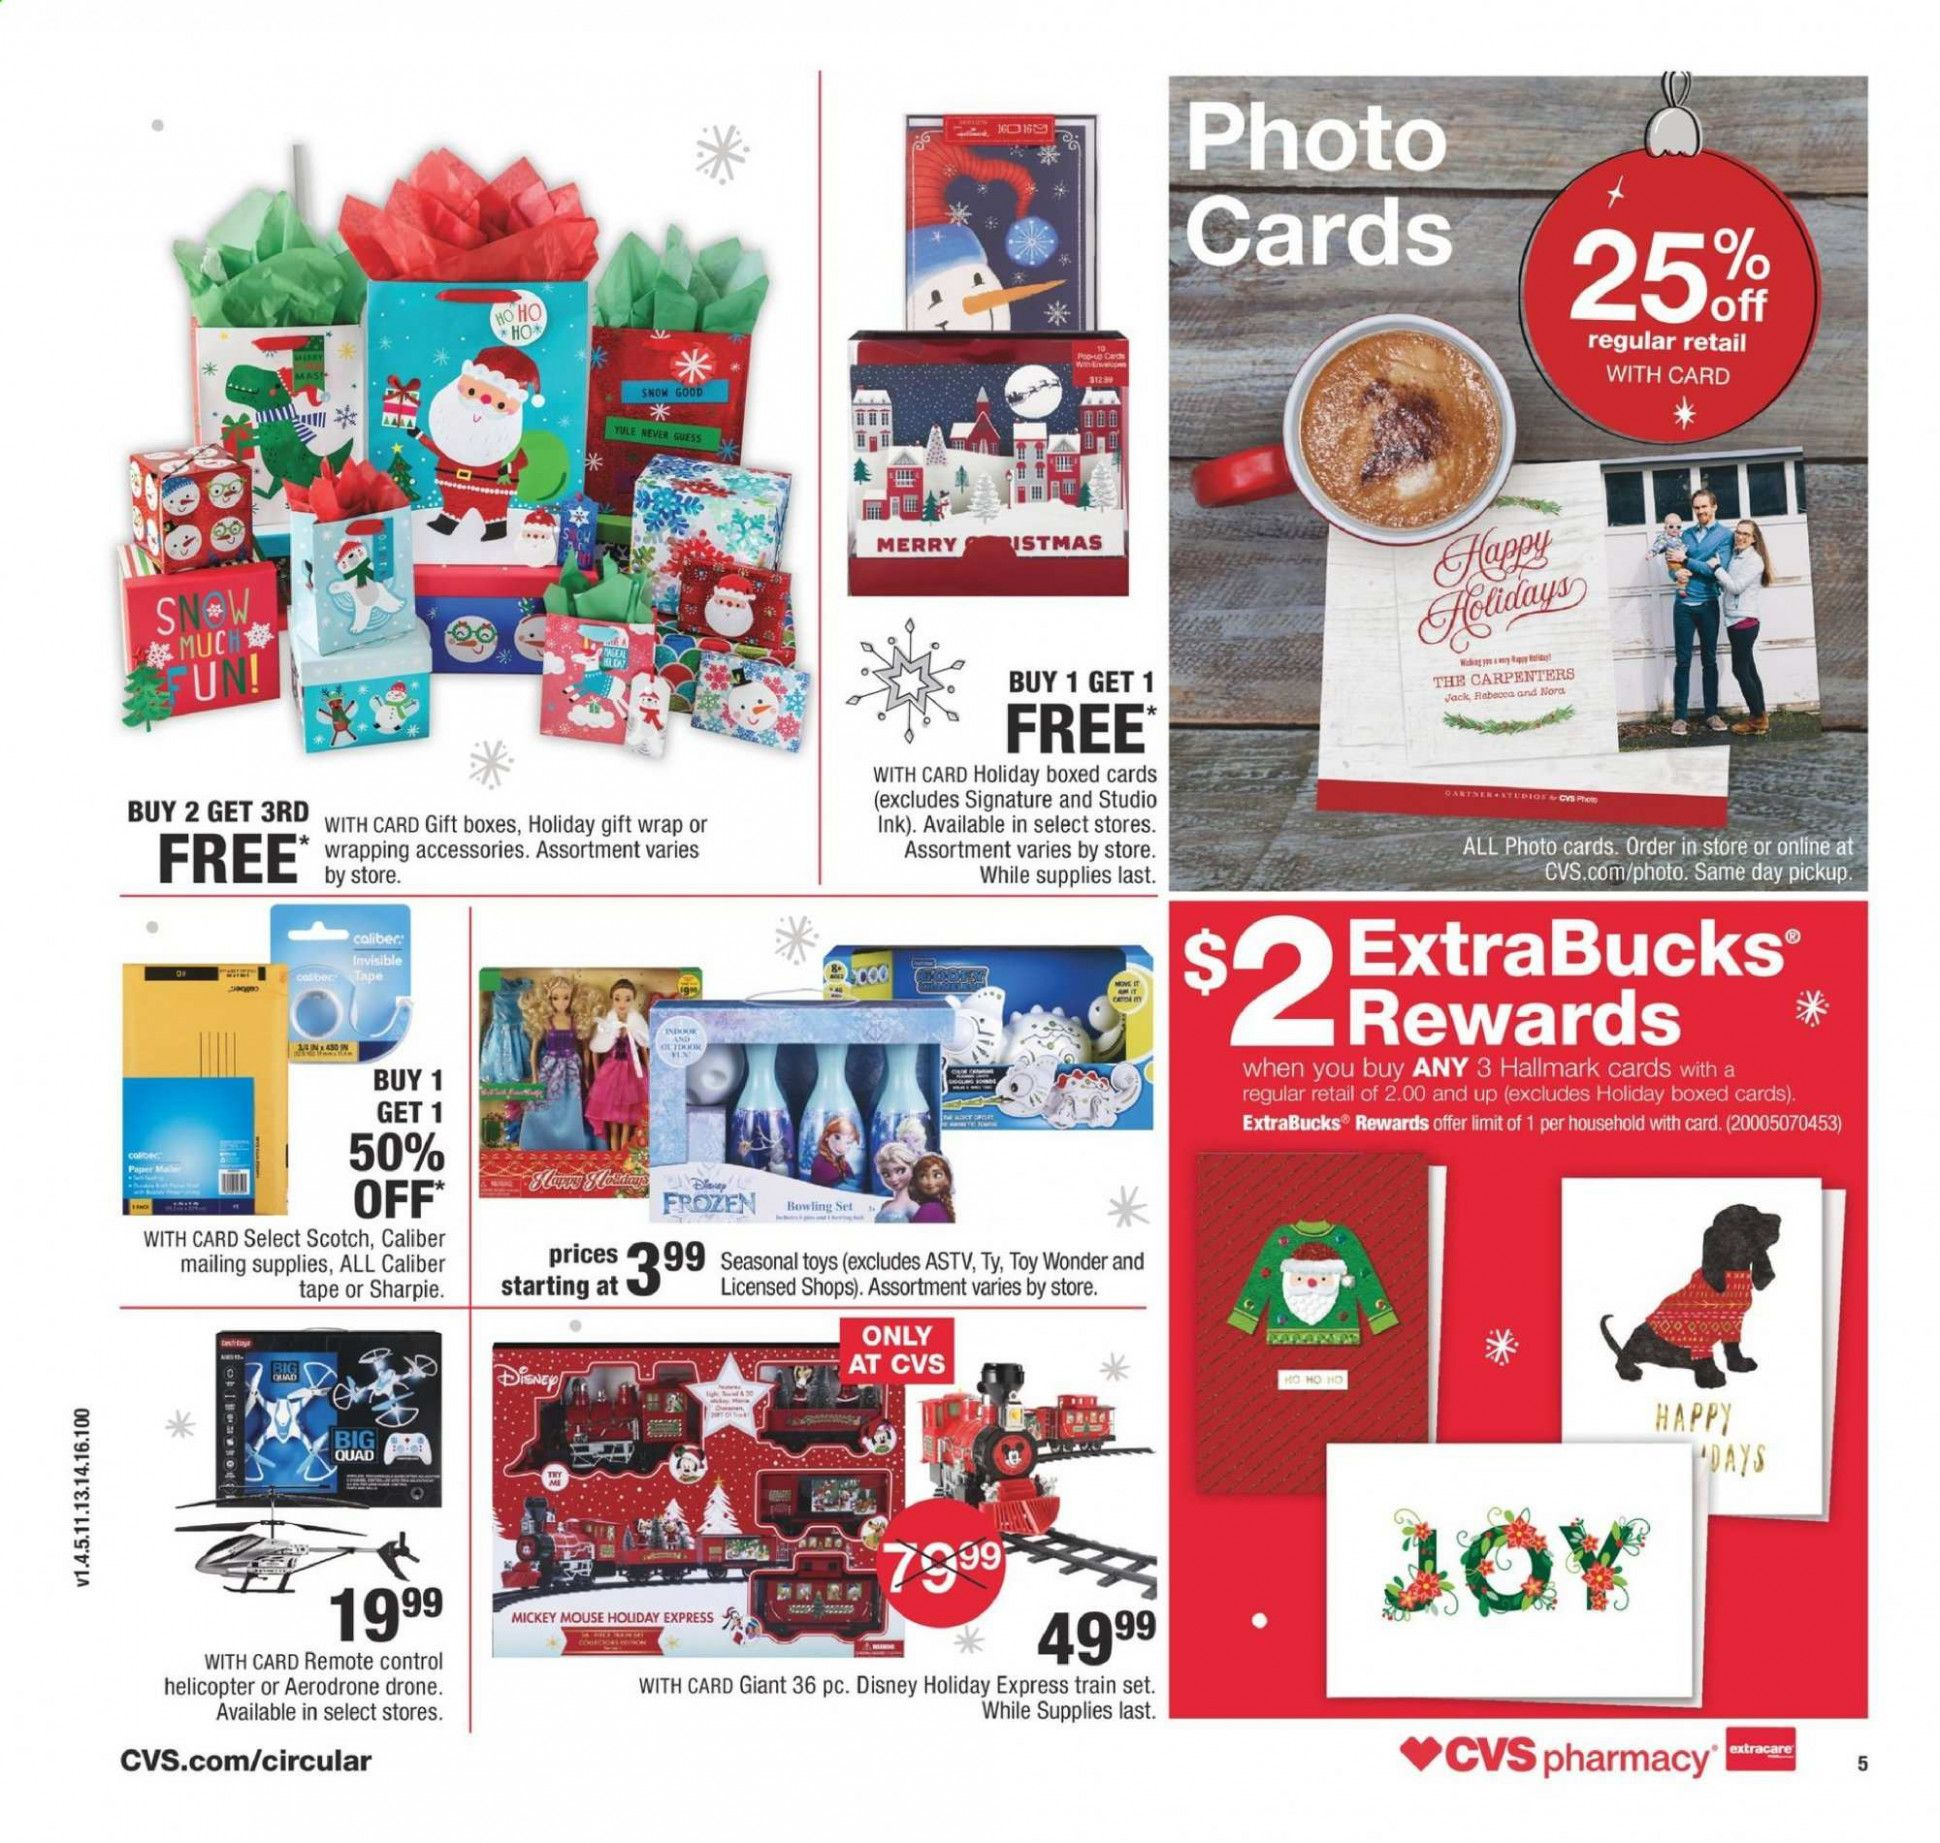 Cvs Boxed Christmas Cards Offer For 2020 6 Cvs Boxed Christmas Cards in 2020 | Boxed christmas cards, Boxed